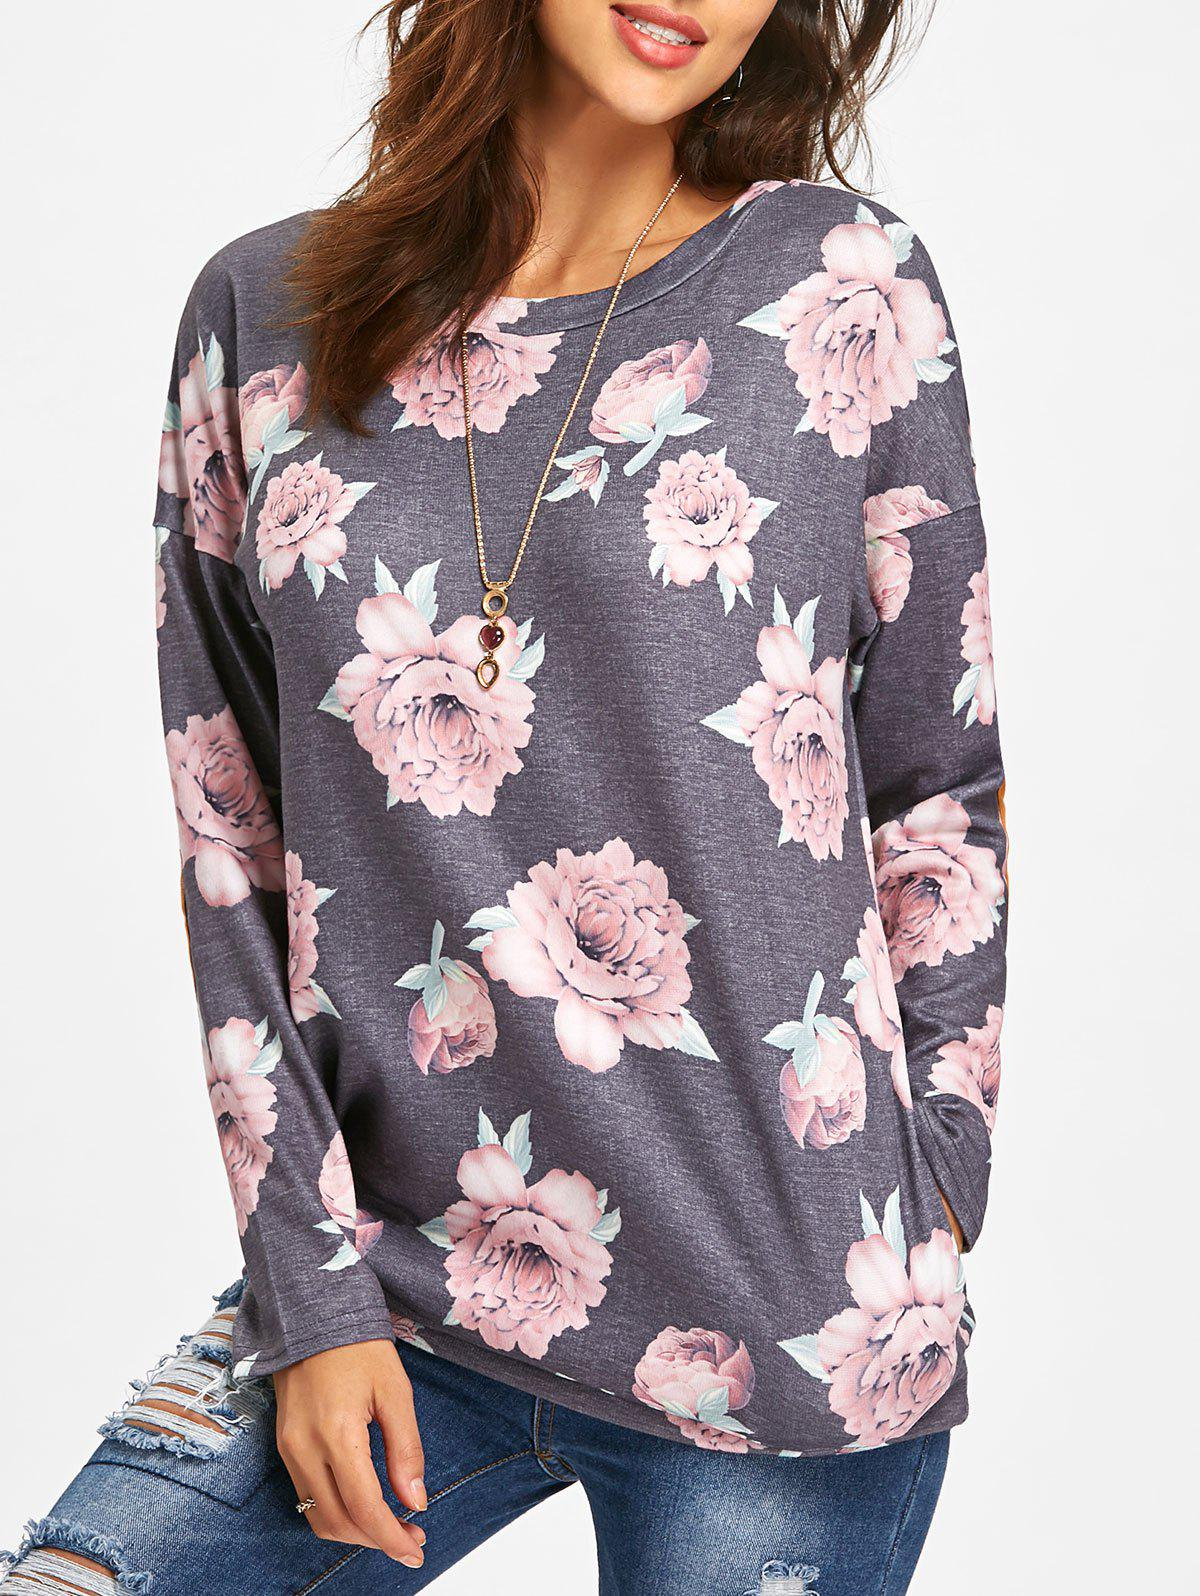 Elbow Patch Long Sleeve Floral Tunic TopWOMEN<br><br>Size: L; Color: GRAY; Material: Polyester,Spandex; Shirt Length: Regular; Sleeve Length: Full; Collar: Scoop Neck; Style: Casual; Pattern Type: Floral; Season: Fall,Spring; Weight: 0.3500kg; Package Contents: 1 x Top;